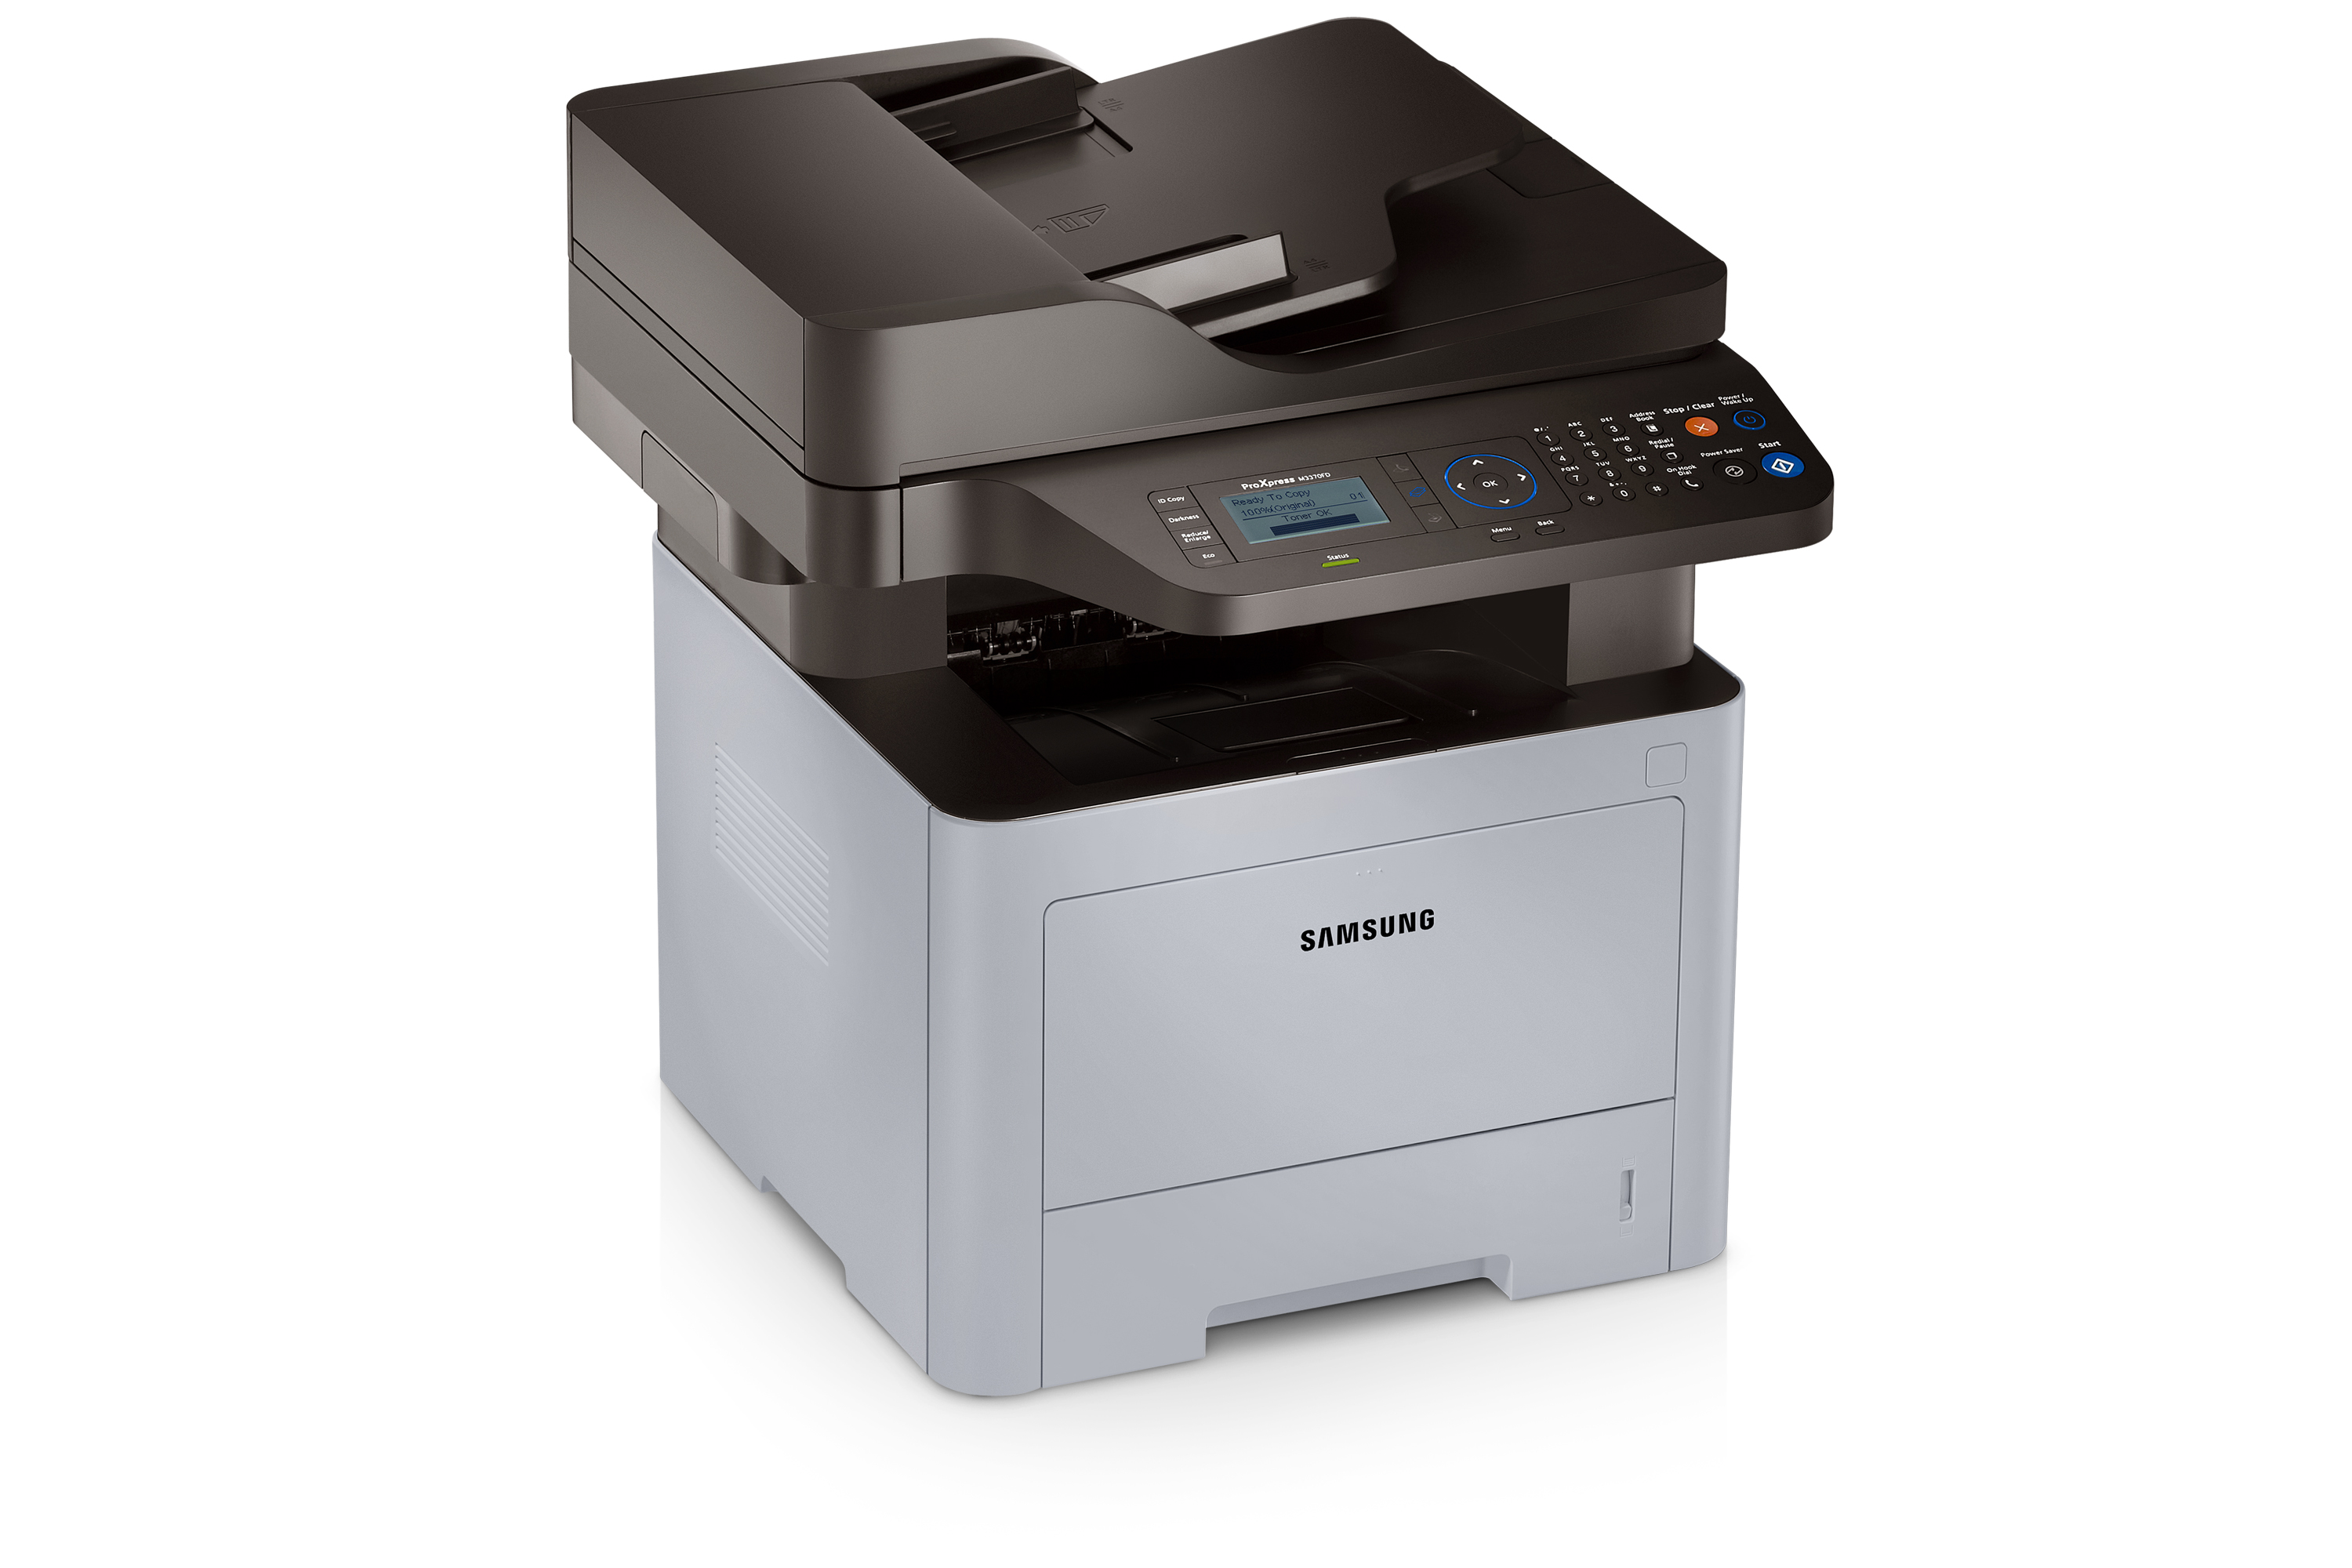 Samsung Mono Multifunction Printer SL-M3370FD with £50 cashback